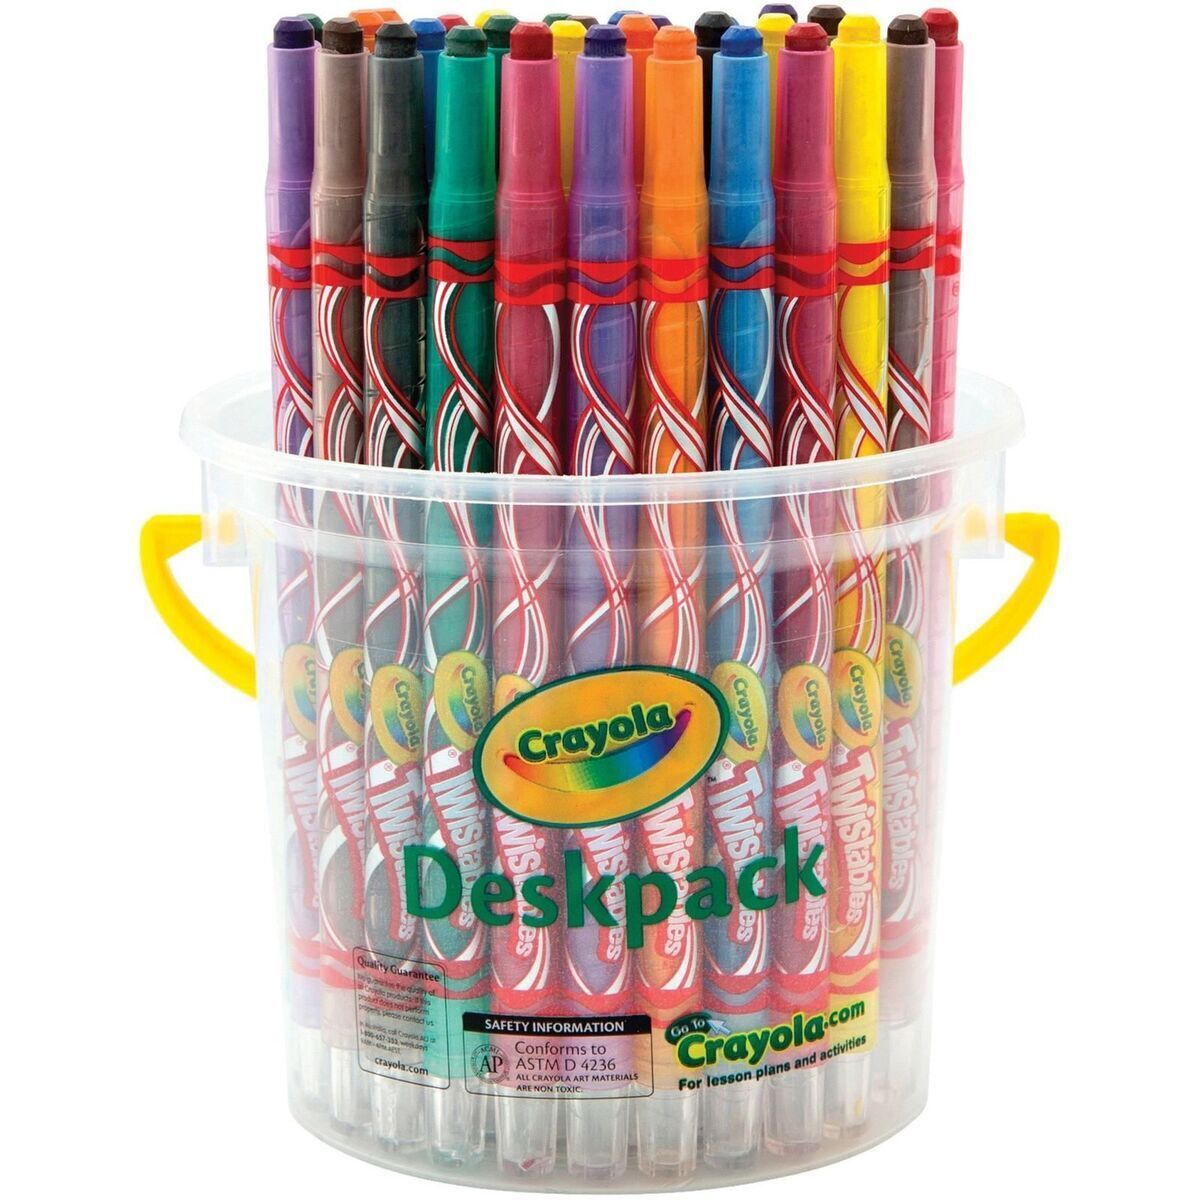 CRAYOLA DESKPACK TWISTABLES CRAYONS 8 Assorted Colours Tub of 32